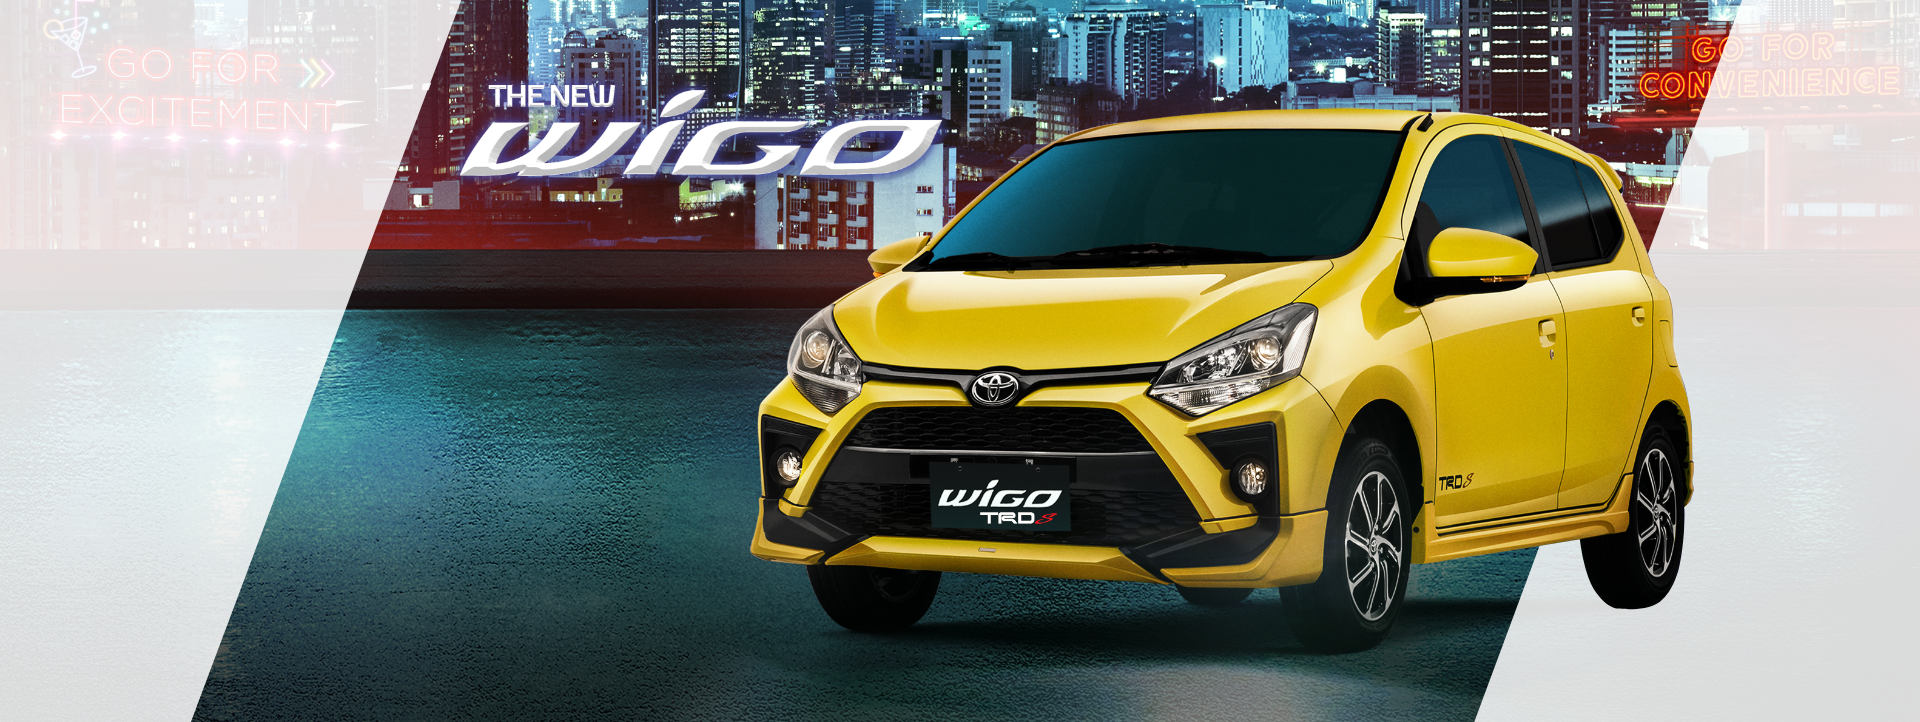 Go For It With The New Wigo!